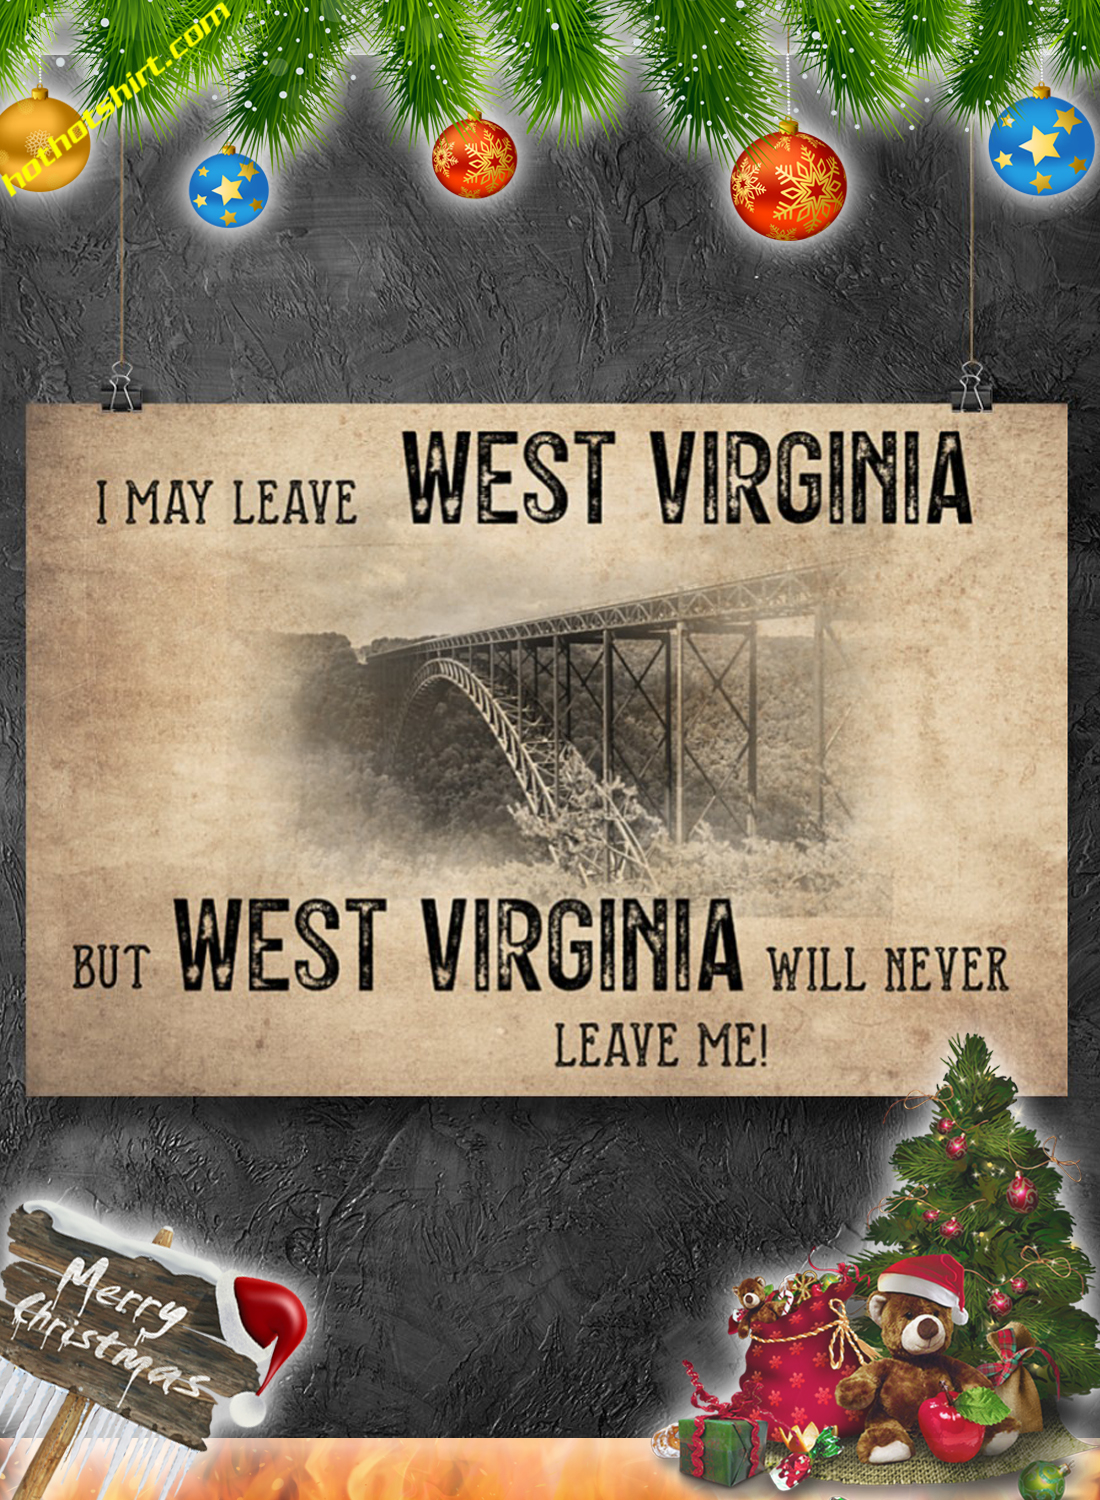 I may leave west virginia but west virginia will never leave me poster 2